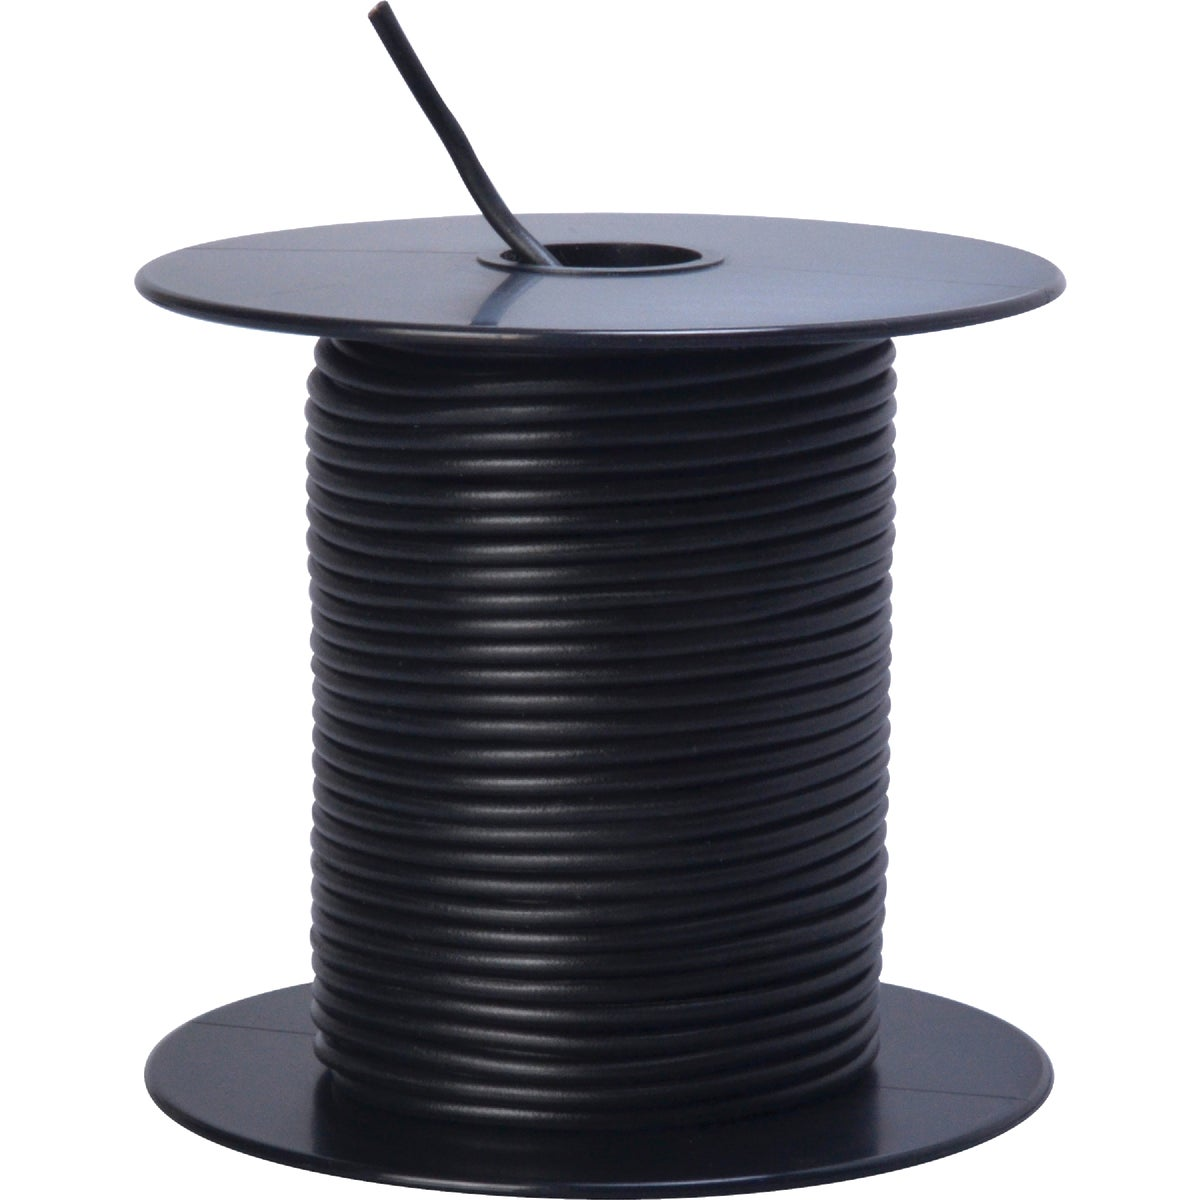 100' 18GA BLK AUTO WIRE - 18-100-11 by Woods Wire Coleman